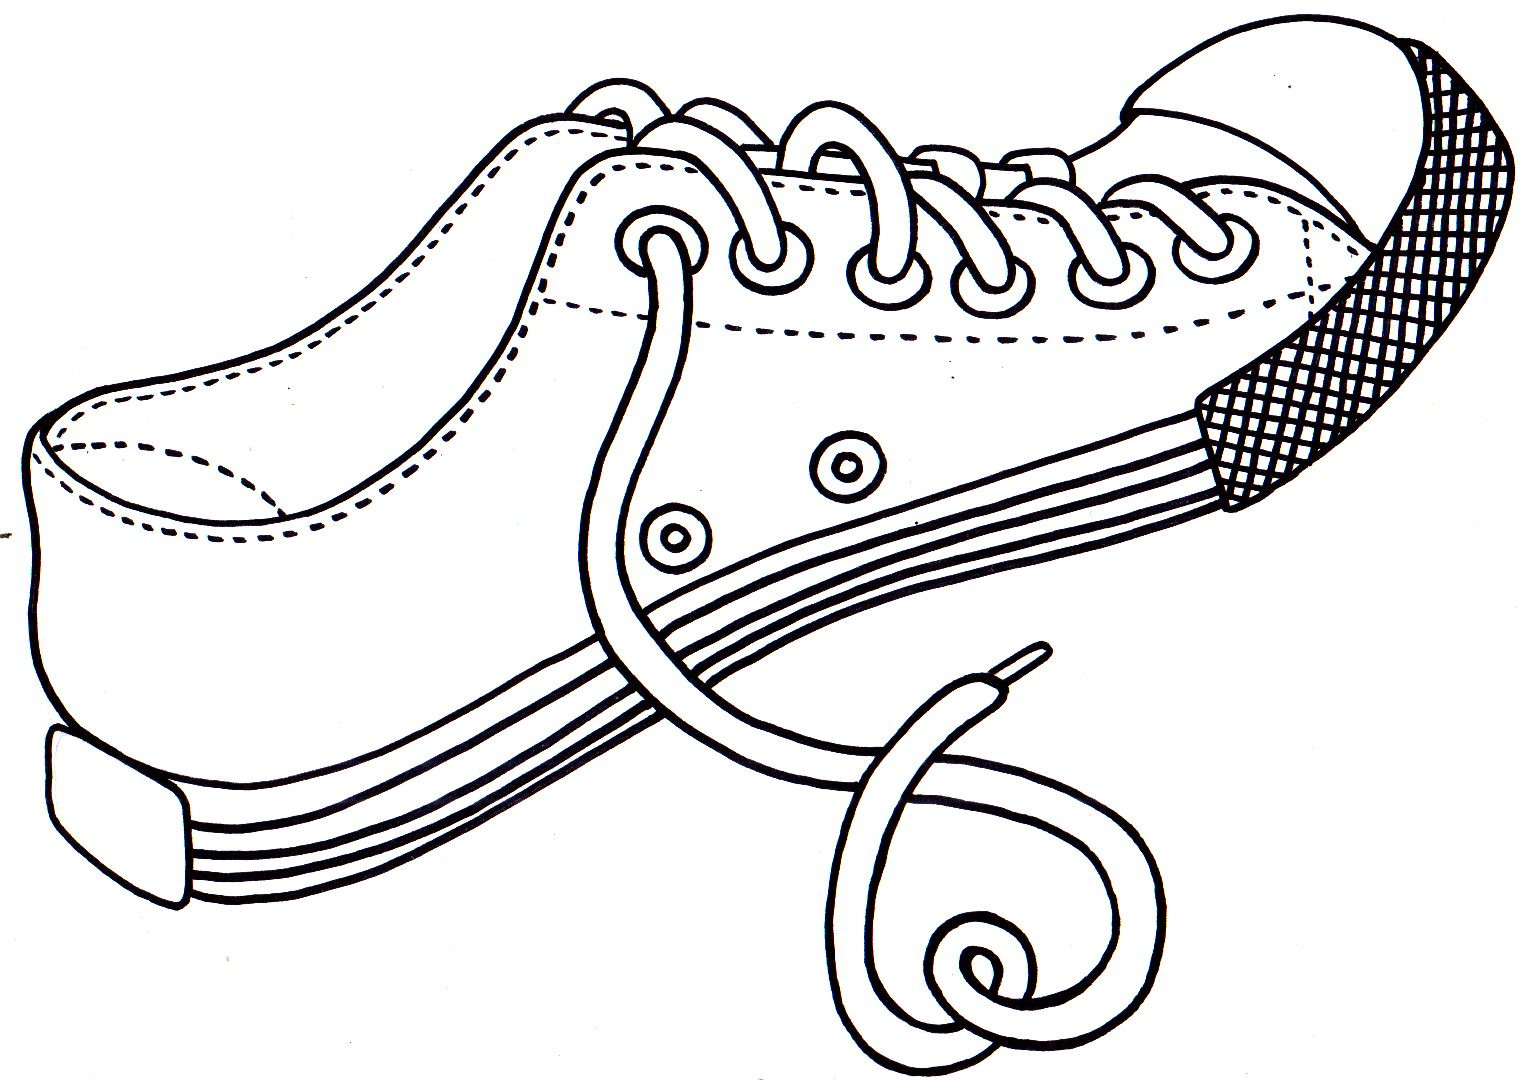 1535x1080 Shoes Coloring Page Free Printable Pages Kids Dance Ballet Stock